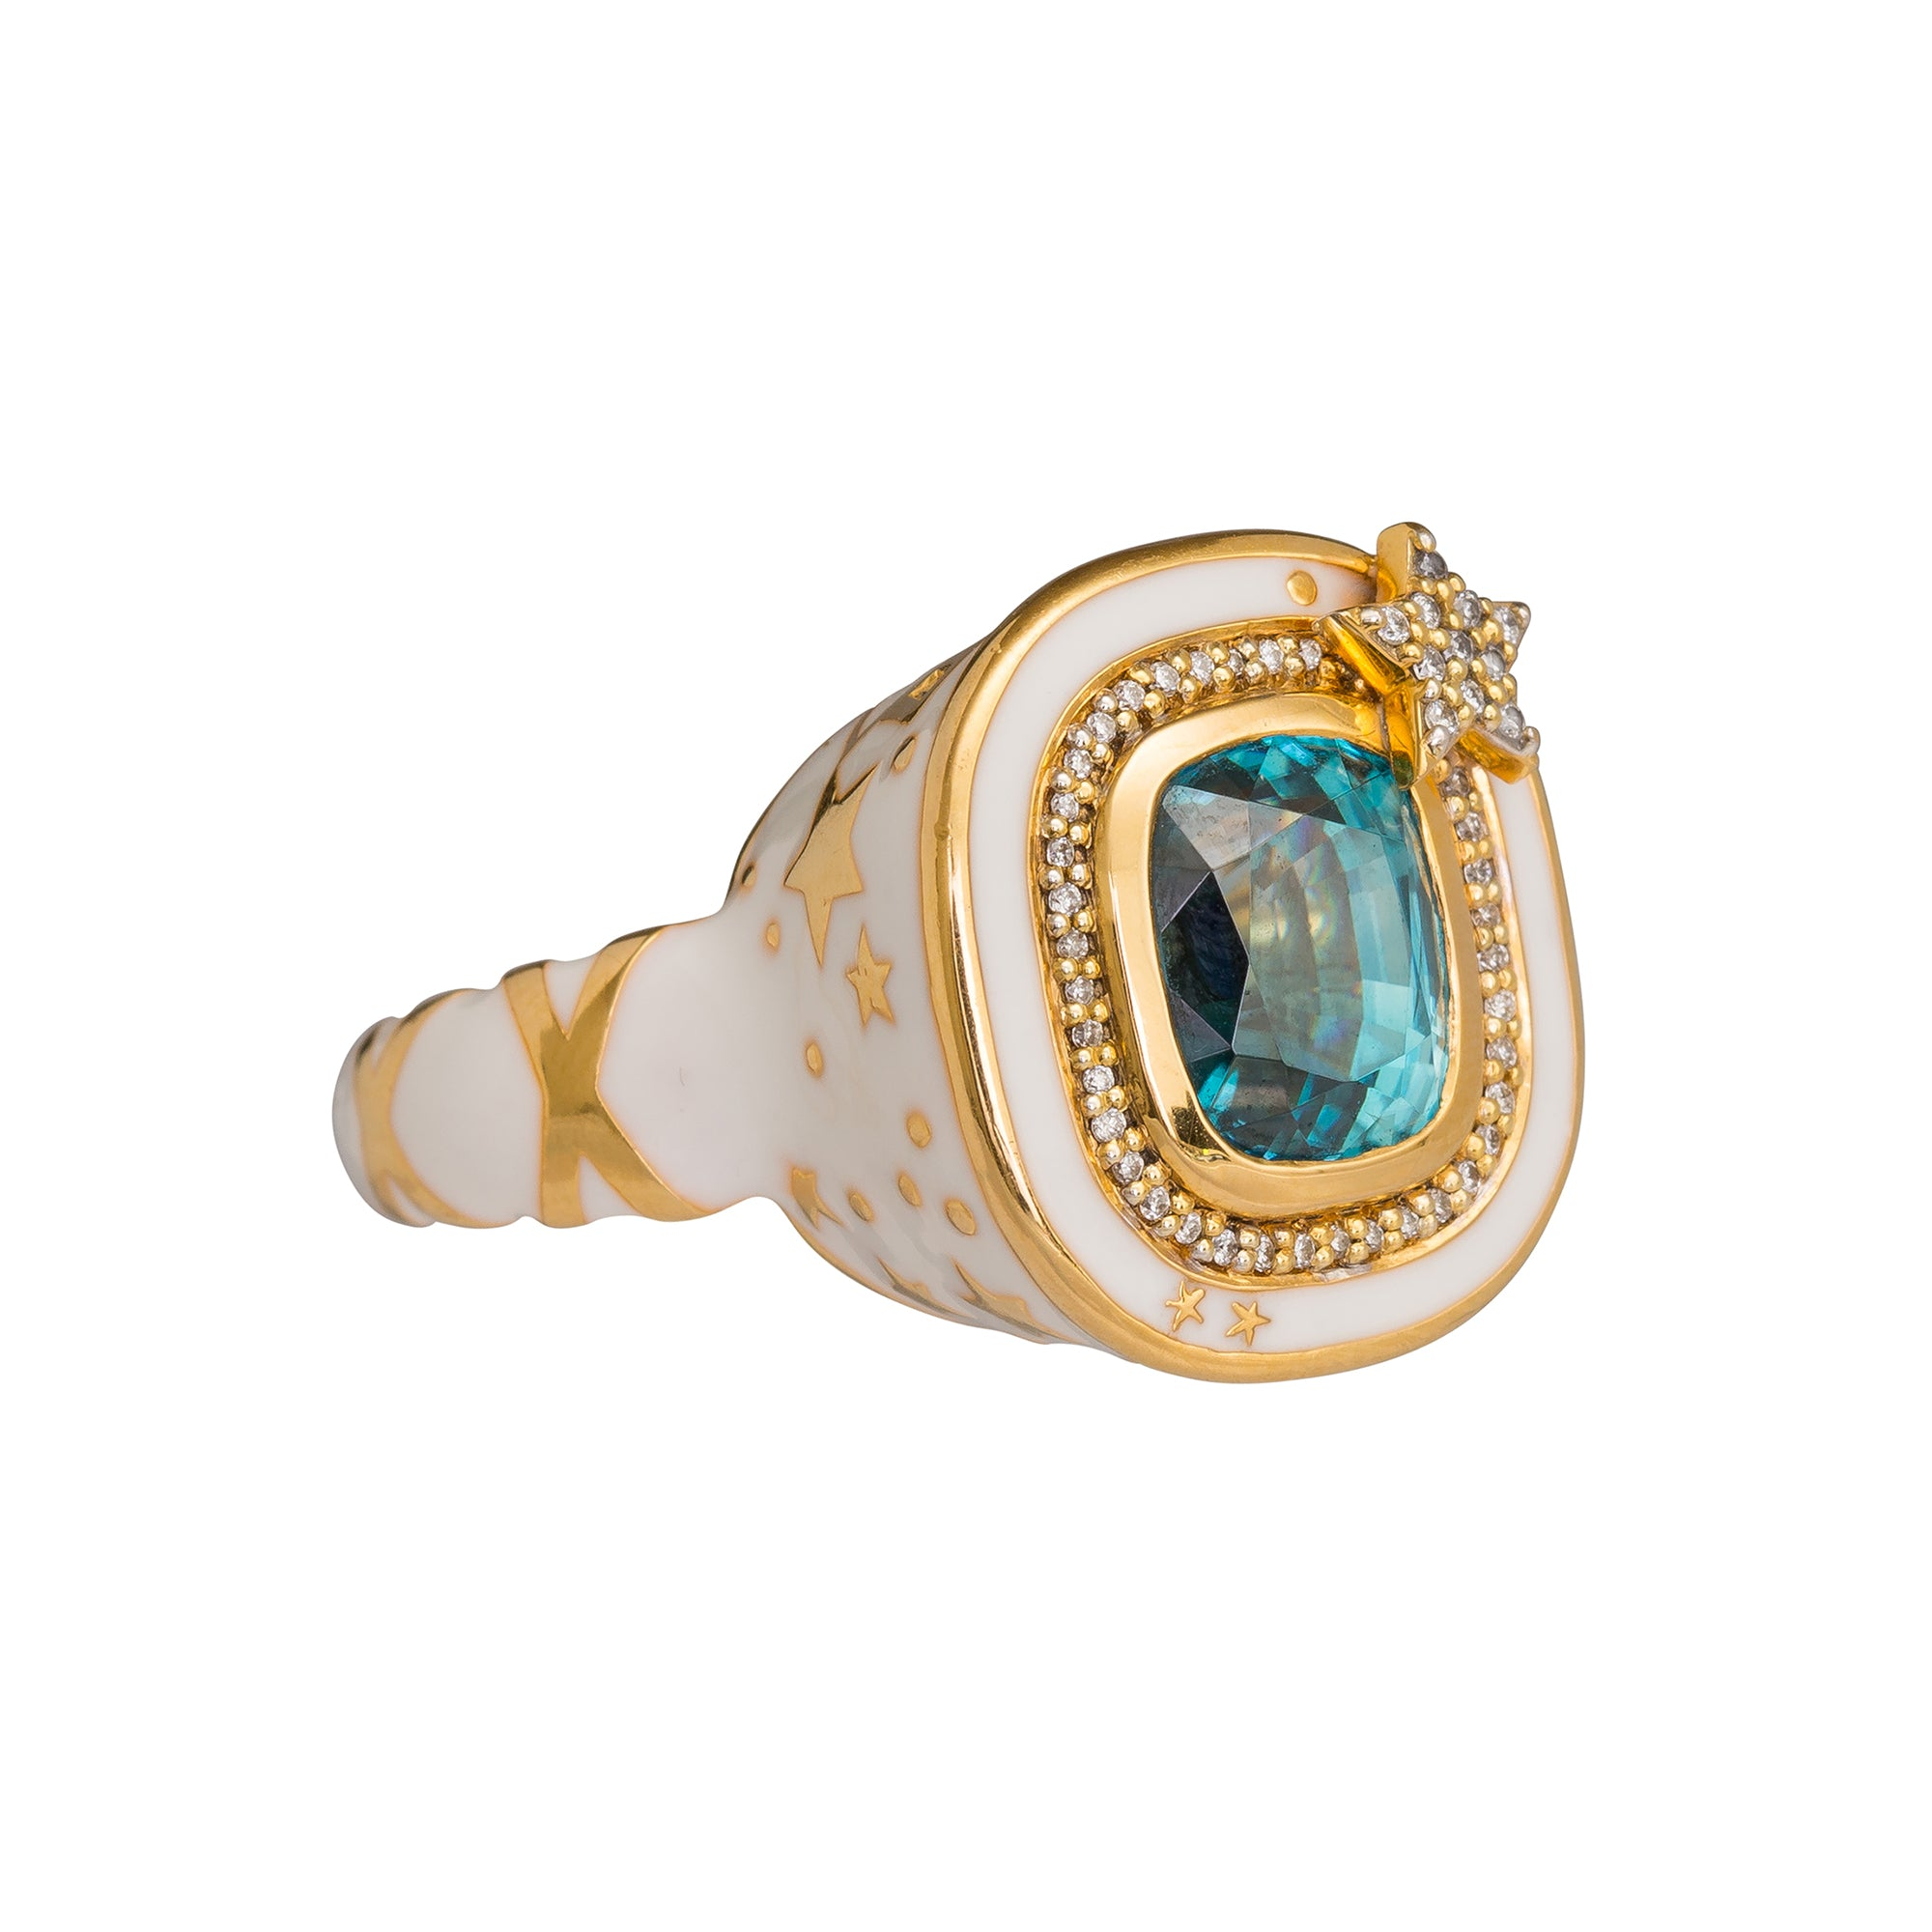 Zircon Lantern Box Ring by Buddha Mama for Broken English Jewelry